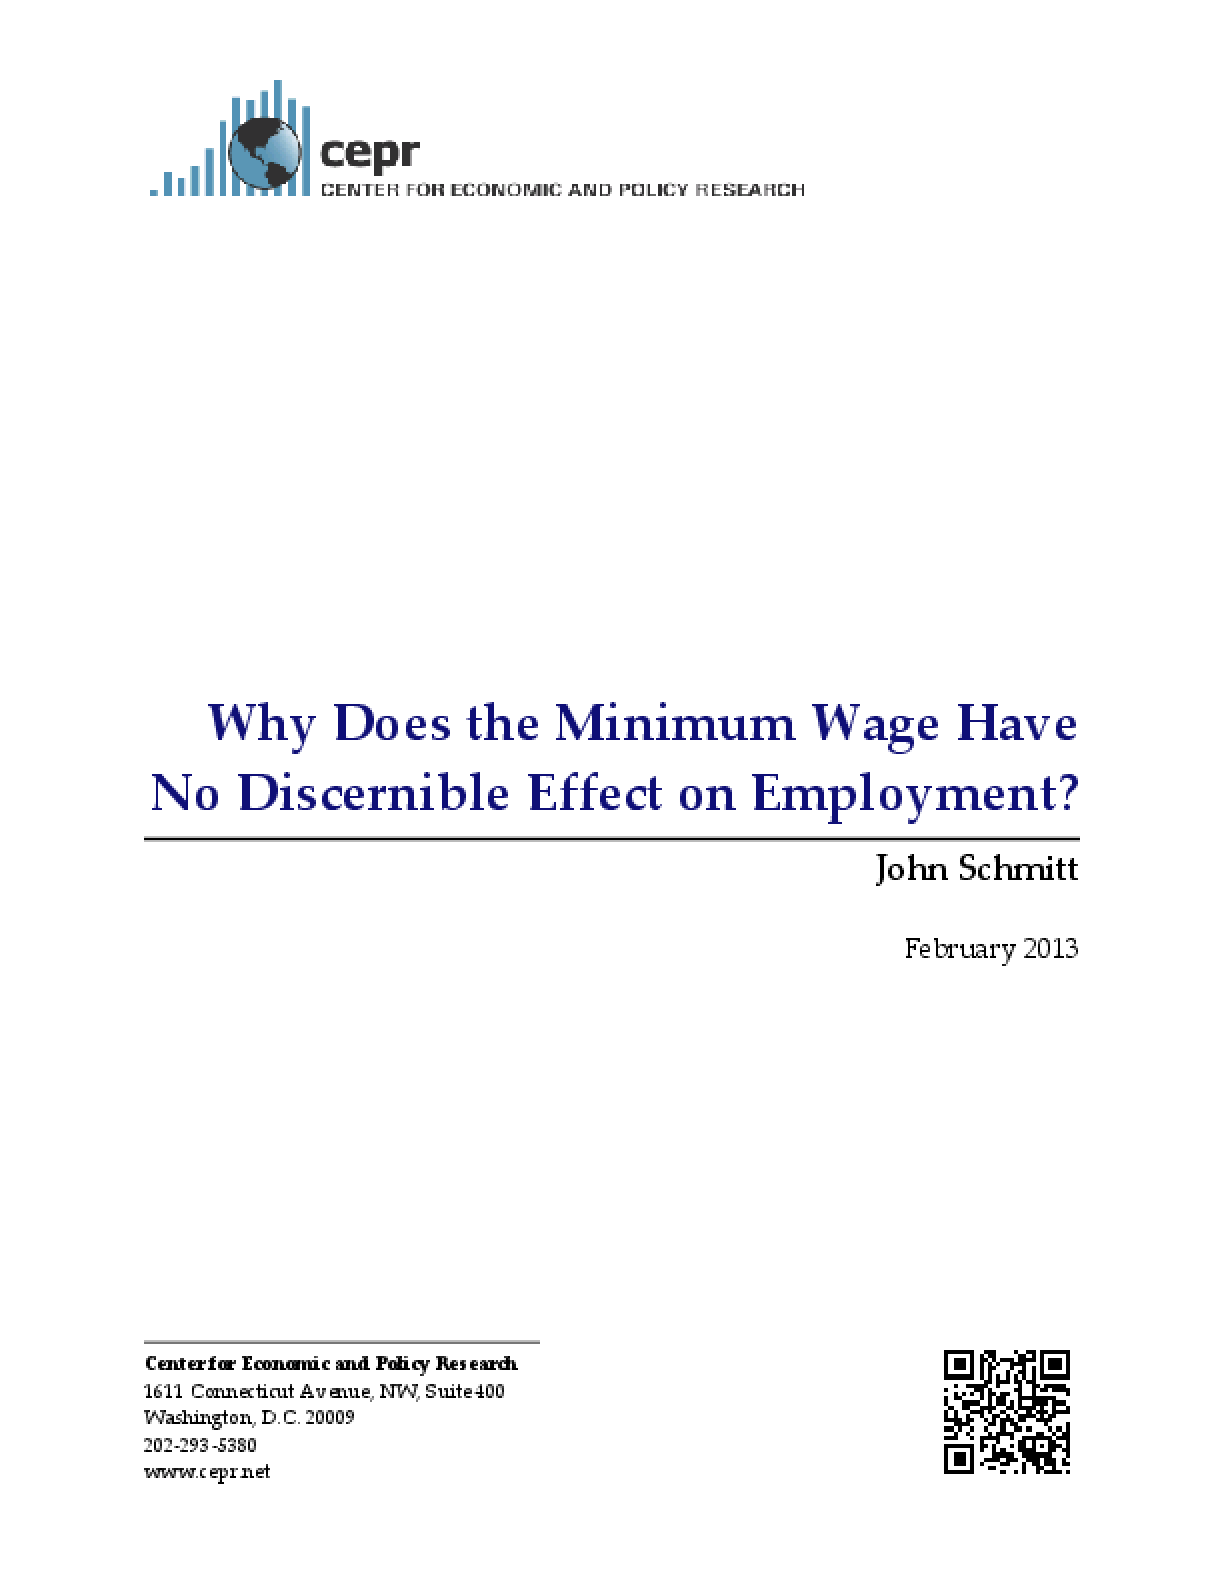 Why Does the Minimum Wage Have No Discernible Effect on Employment?